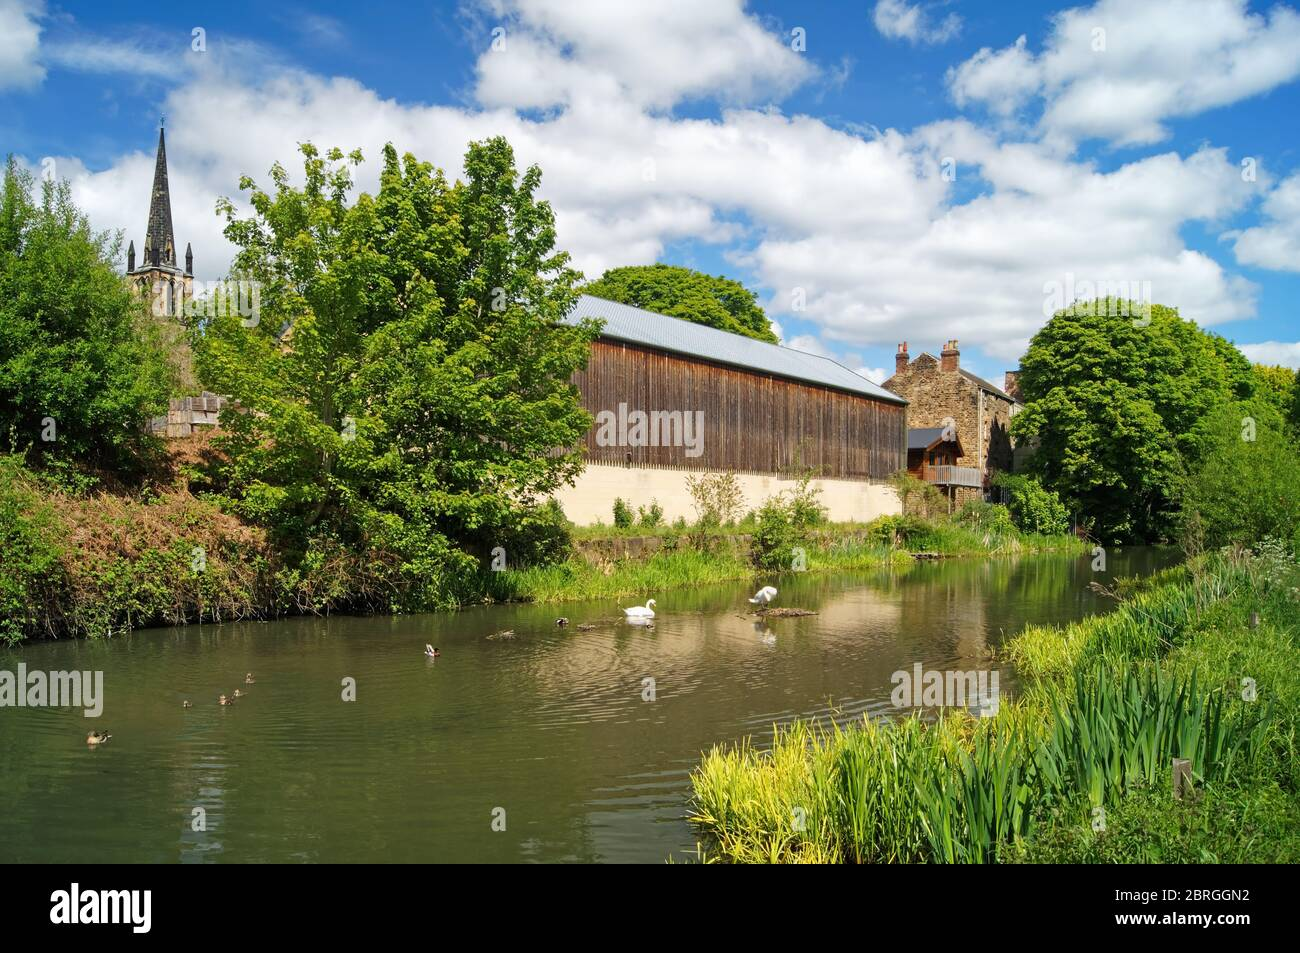 UK,South Yorkshire,Elsecar,Holy Trinity Parish Church and buildings next to Elsecar Canal Stock Photo